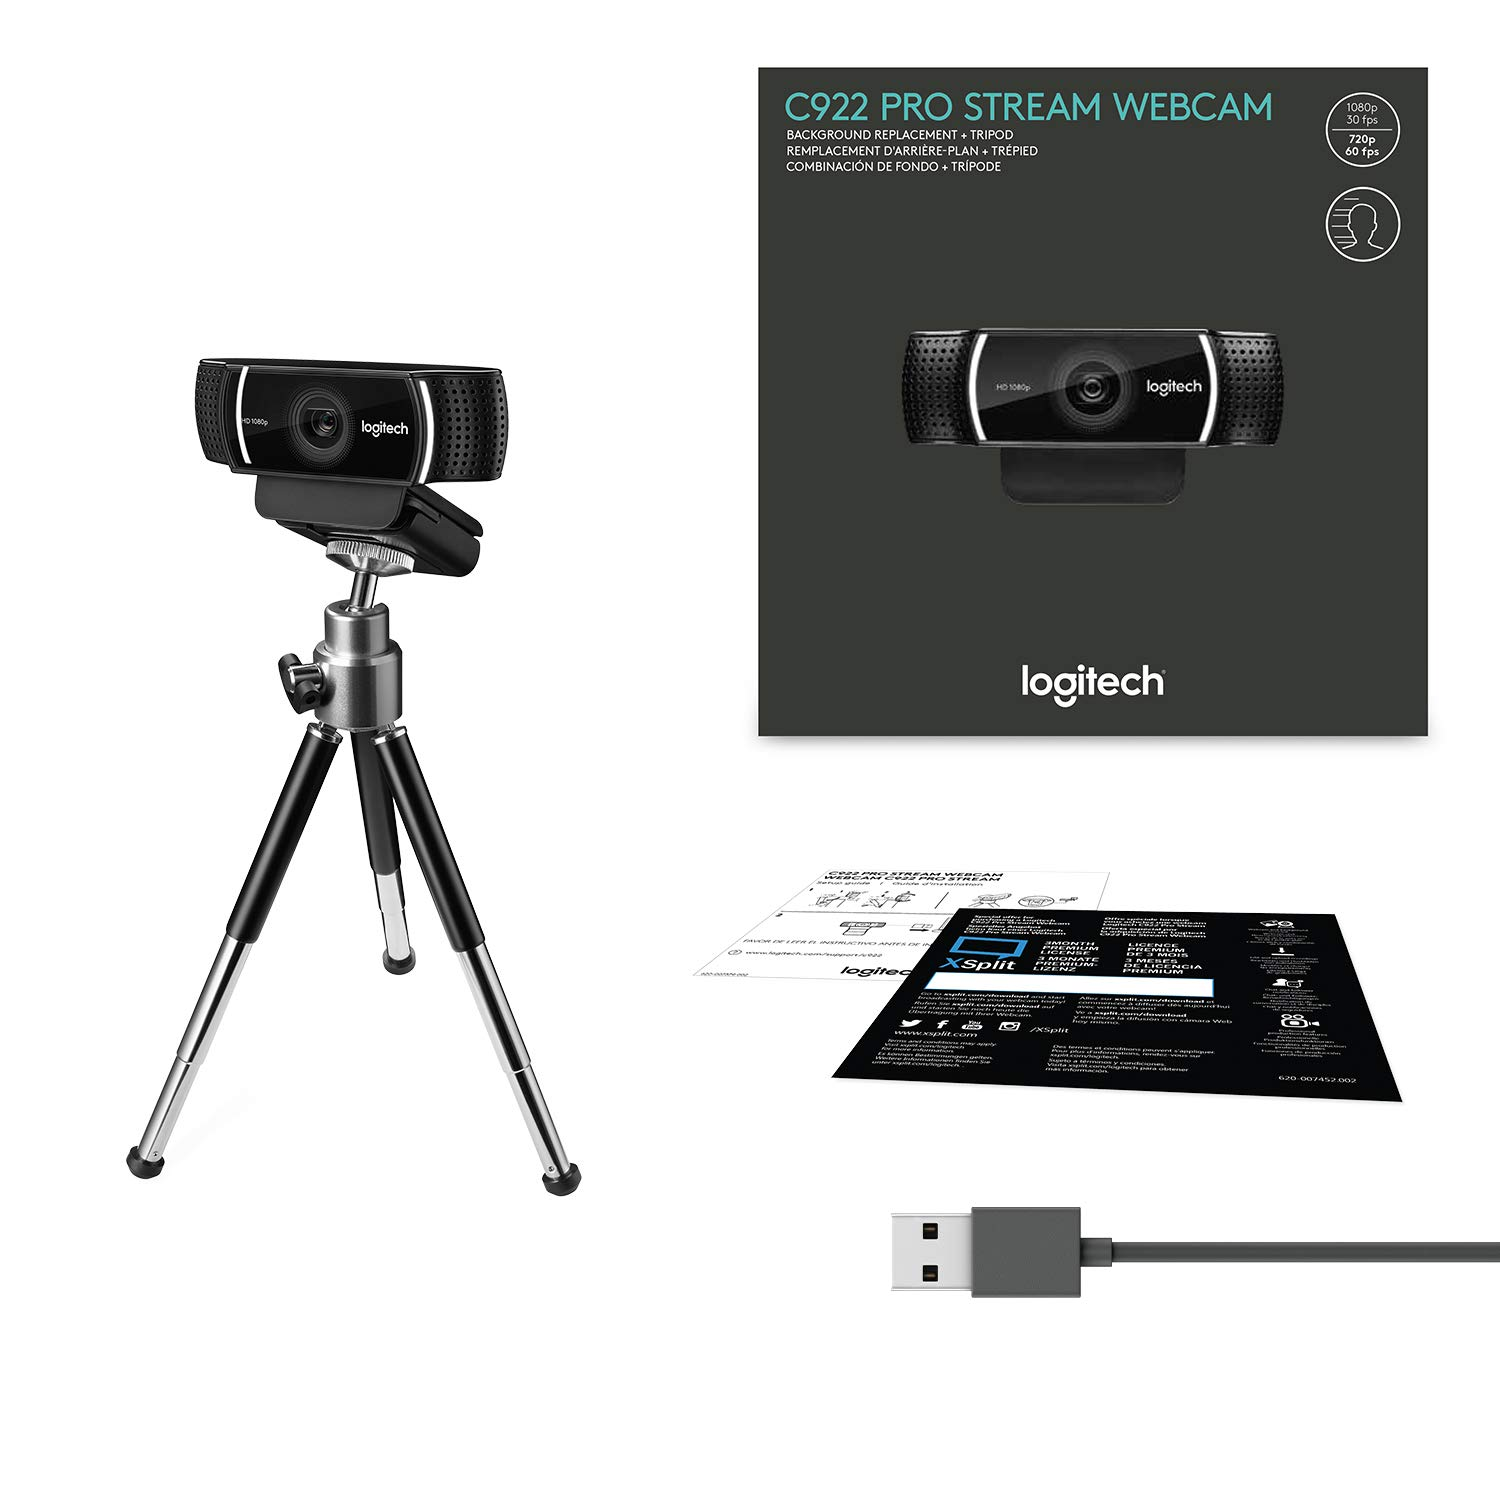 Logitech C922 Pro Stream Webcam 1080P Camera for HD Video Streaming & Recording 720P at 60Fps with Tripod Included by Logitech